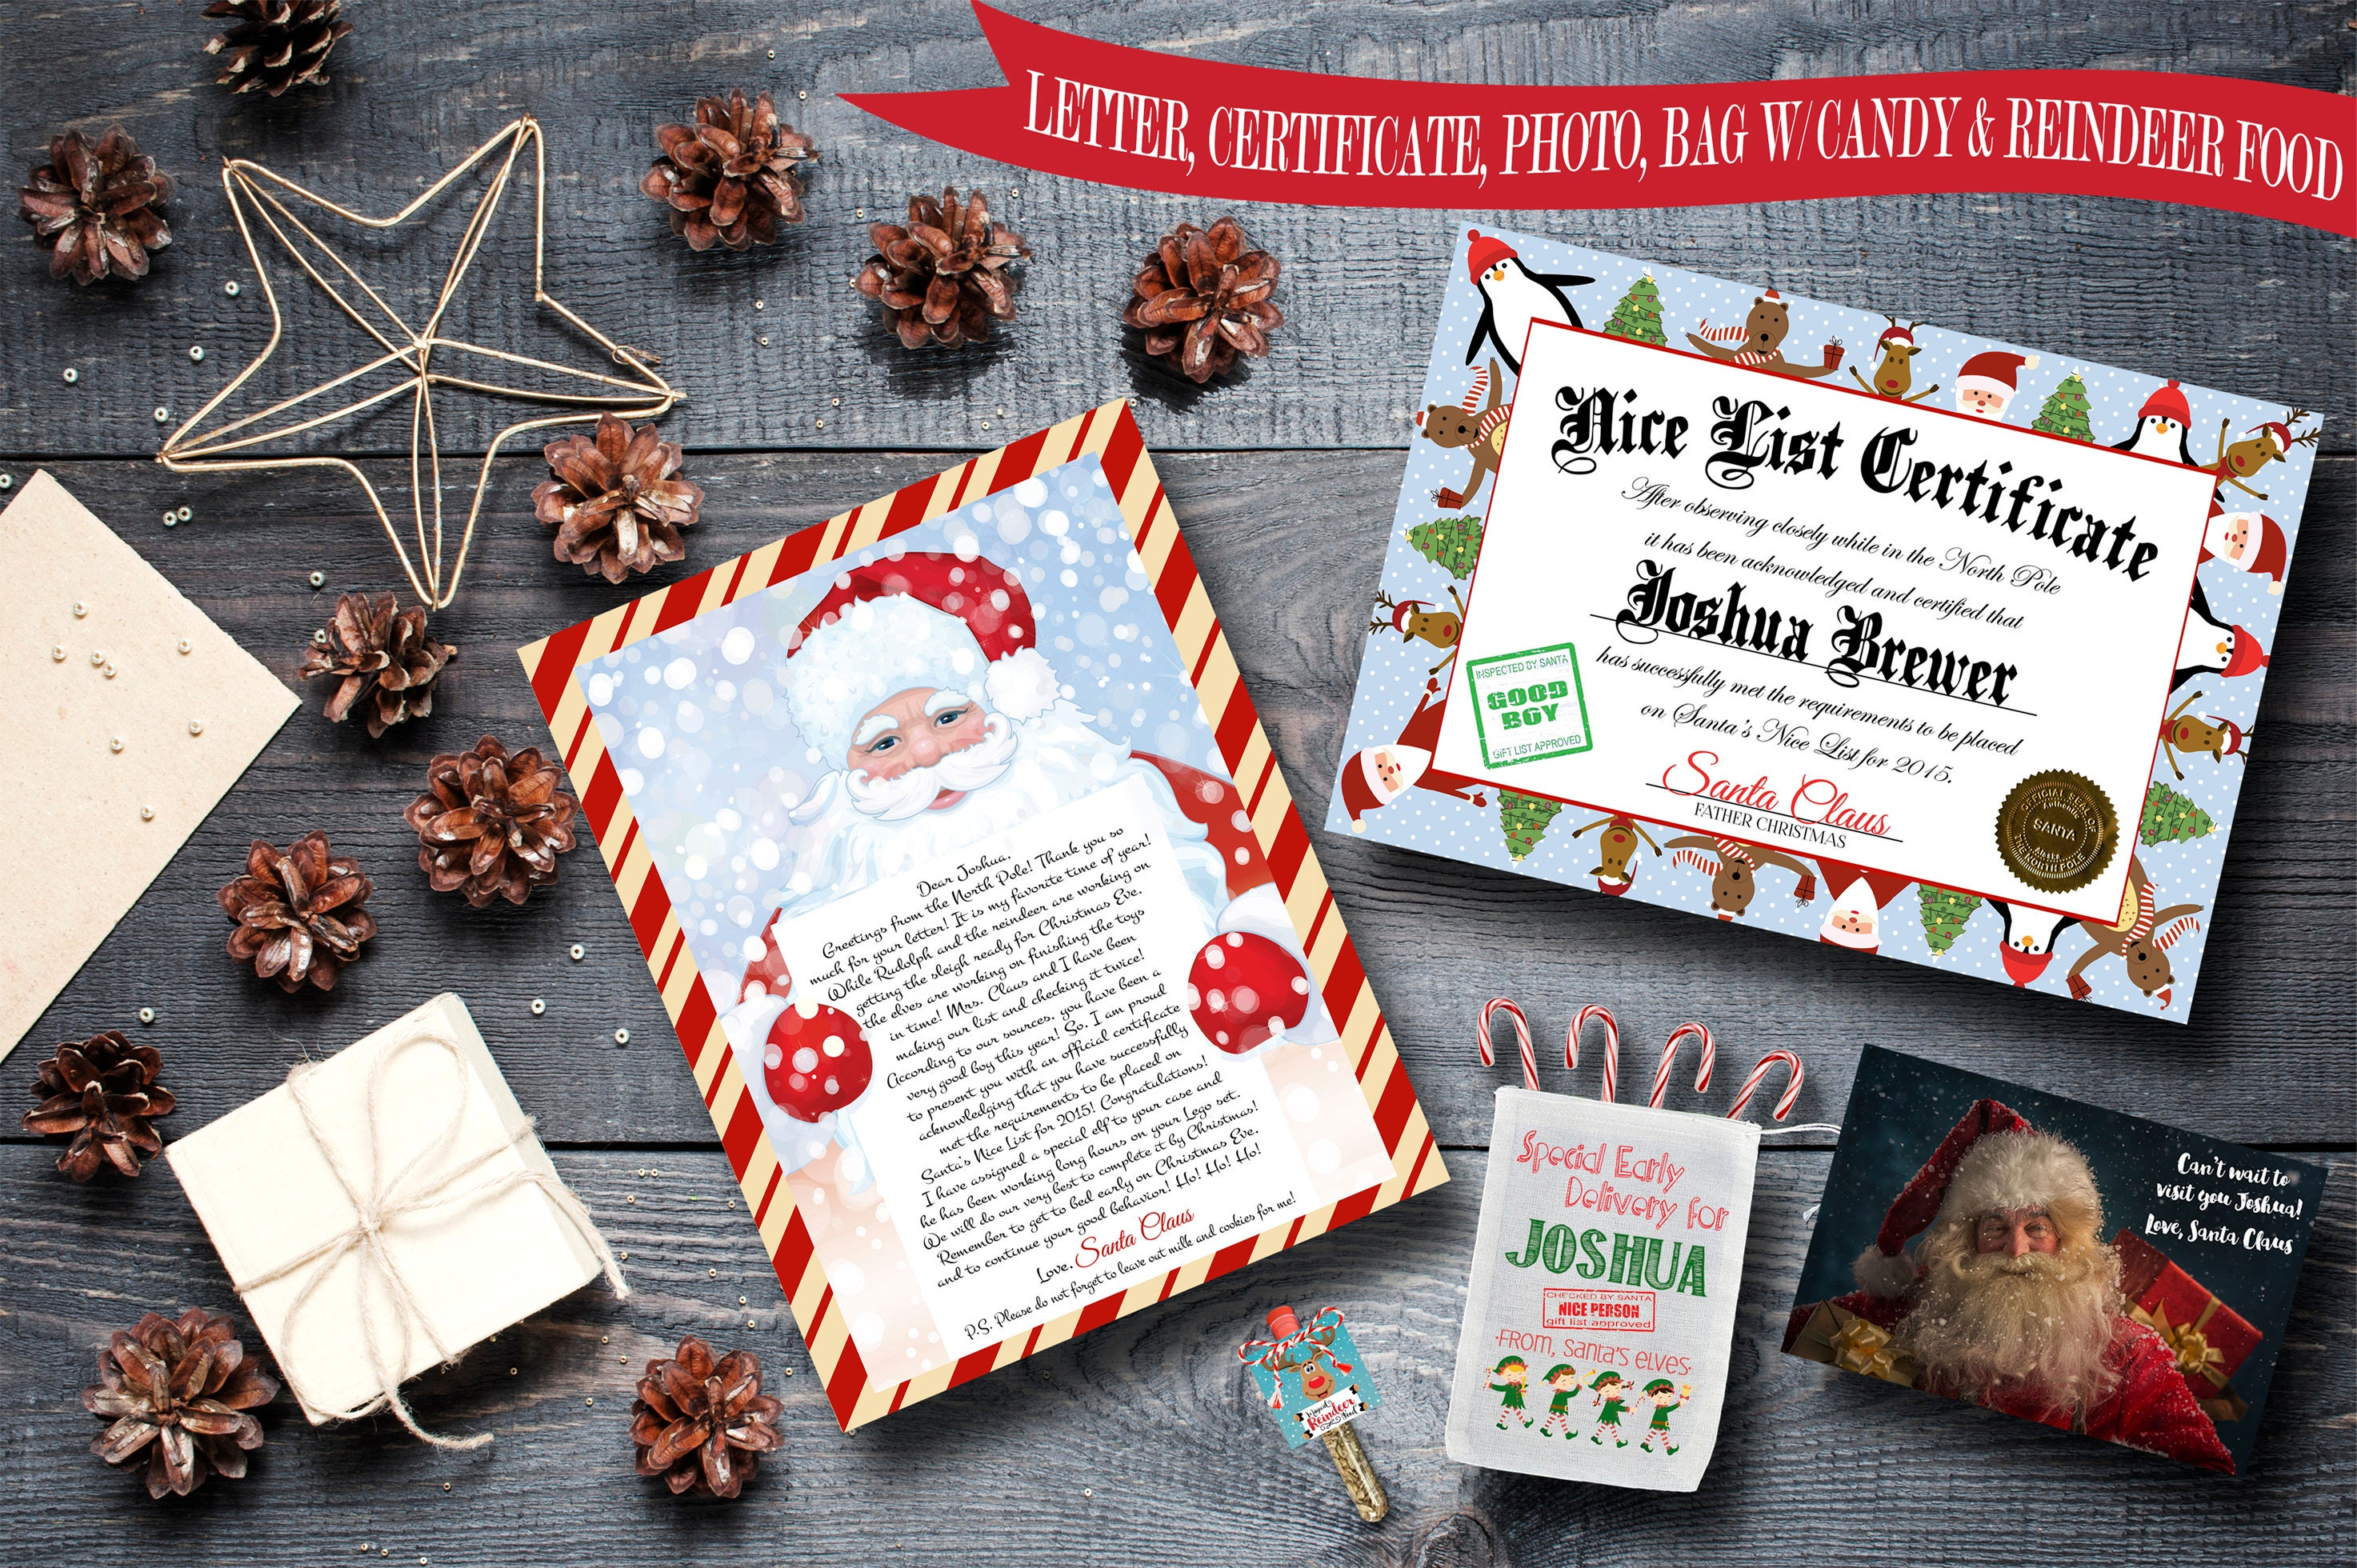 Christmas package from santa claus letter from santa nice list christmas package from santa claus letter from santa nice list certificate elf gift spiritdancerdesigns Image collections